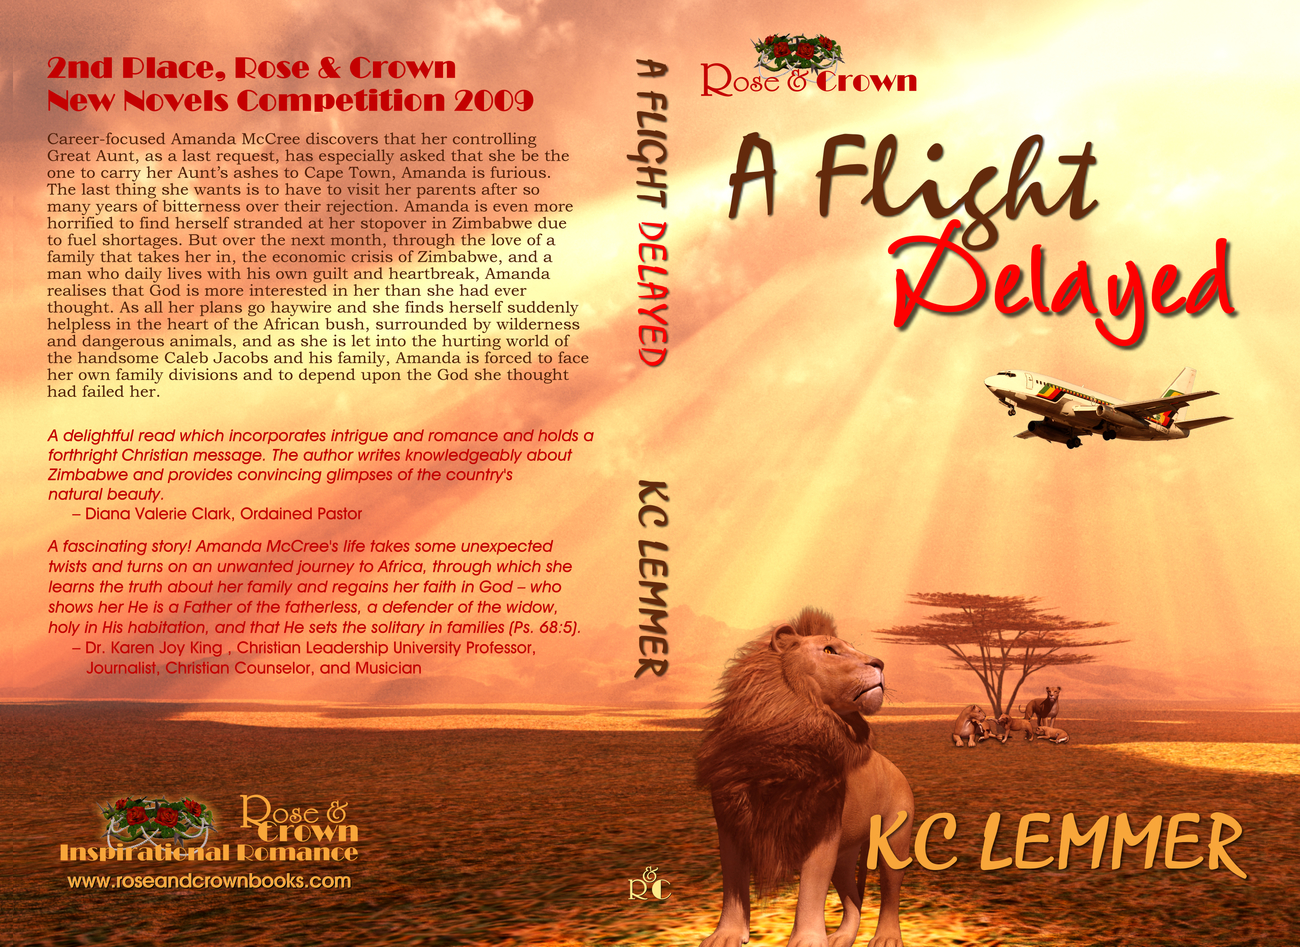 FULL COVER: A FLIGHT DELAYED by screencraft